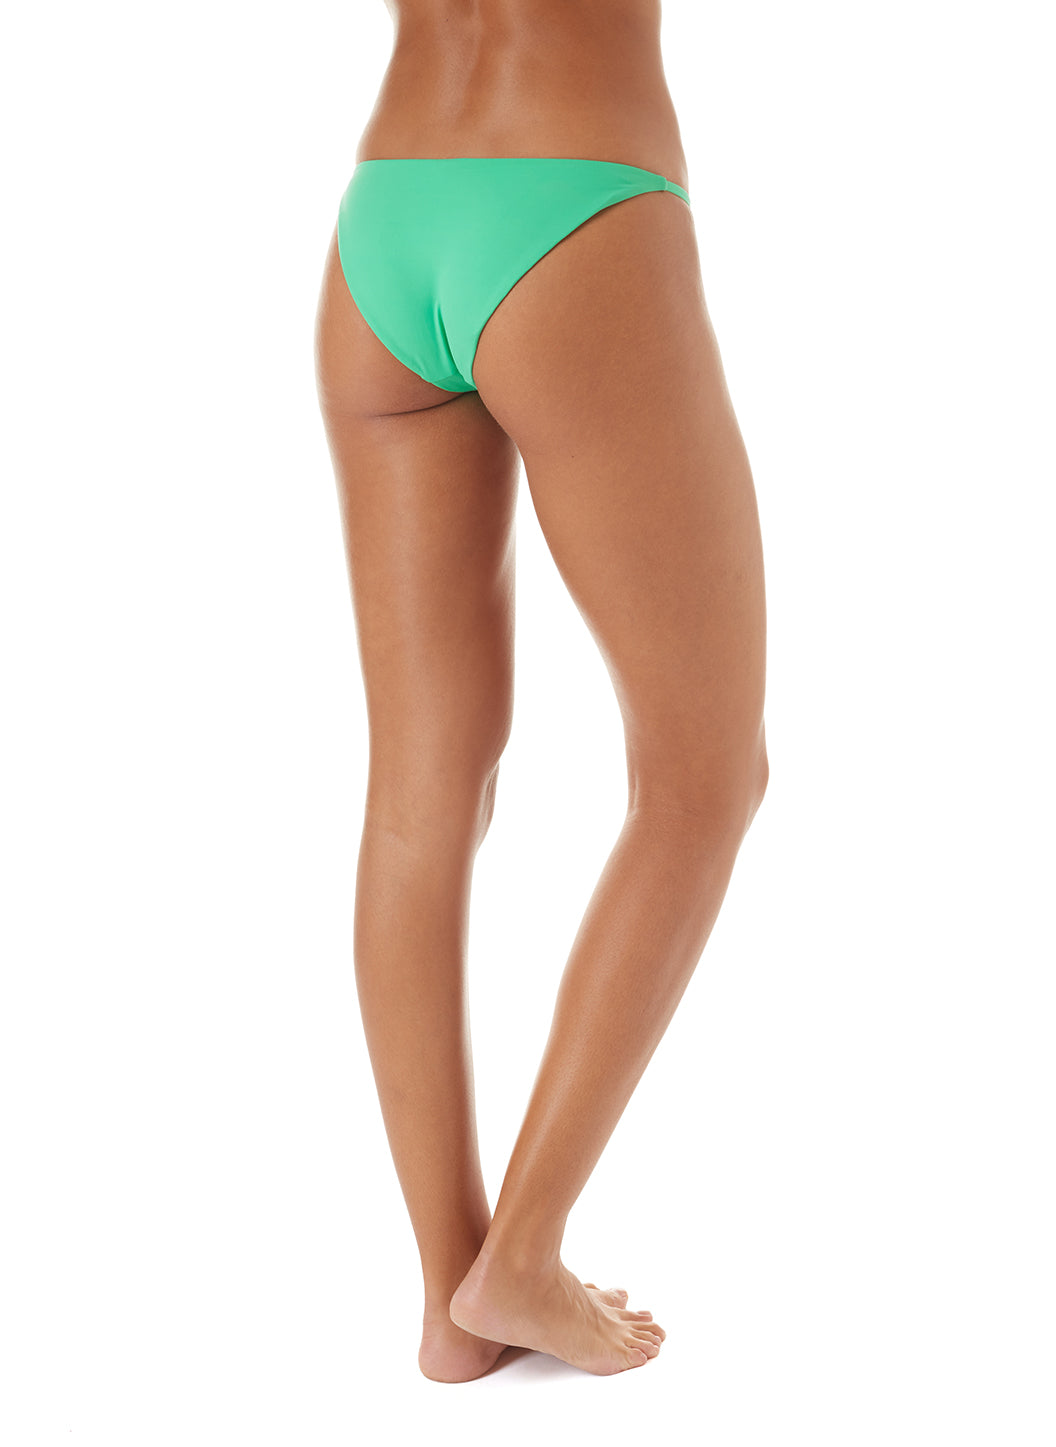 Exclusive St Tropez Green High-Leg Bikini Bottom